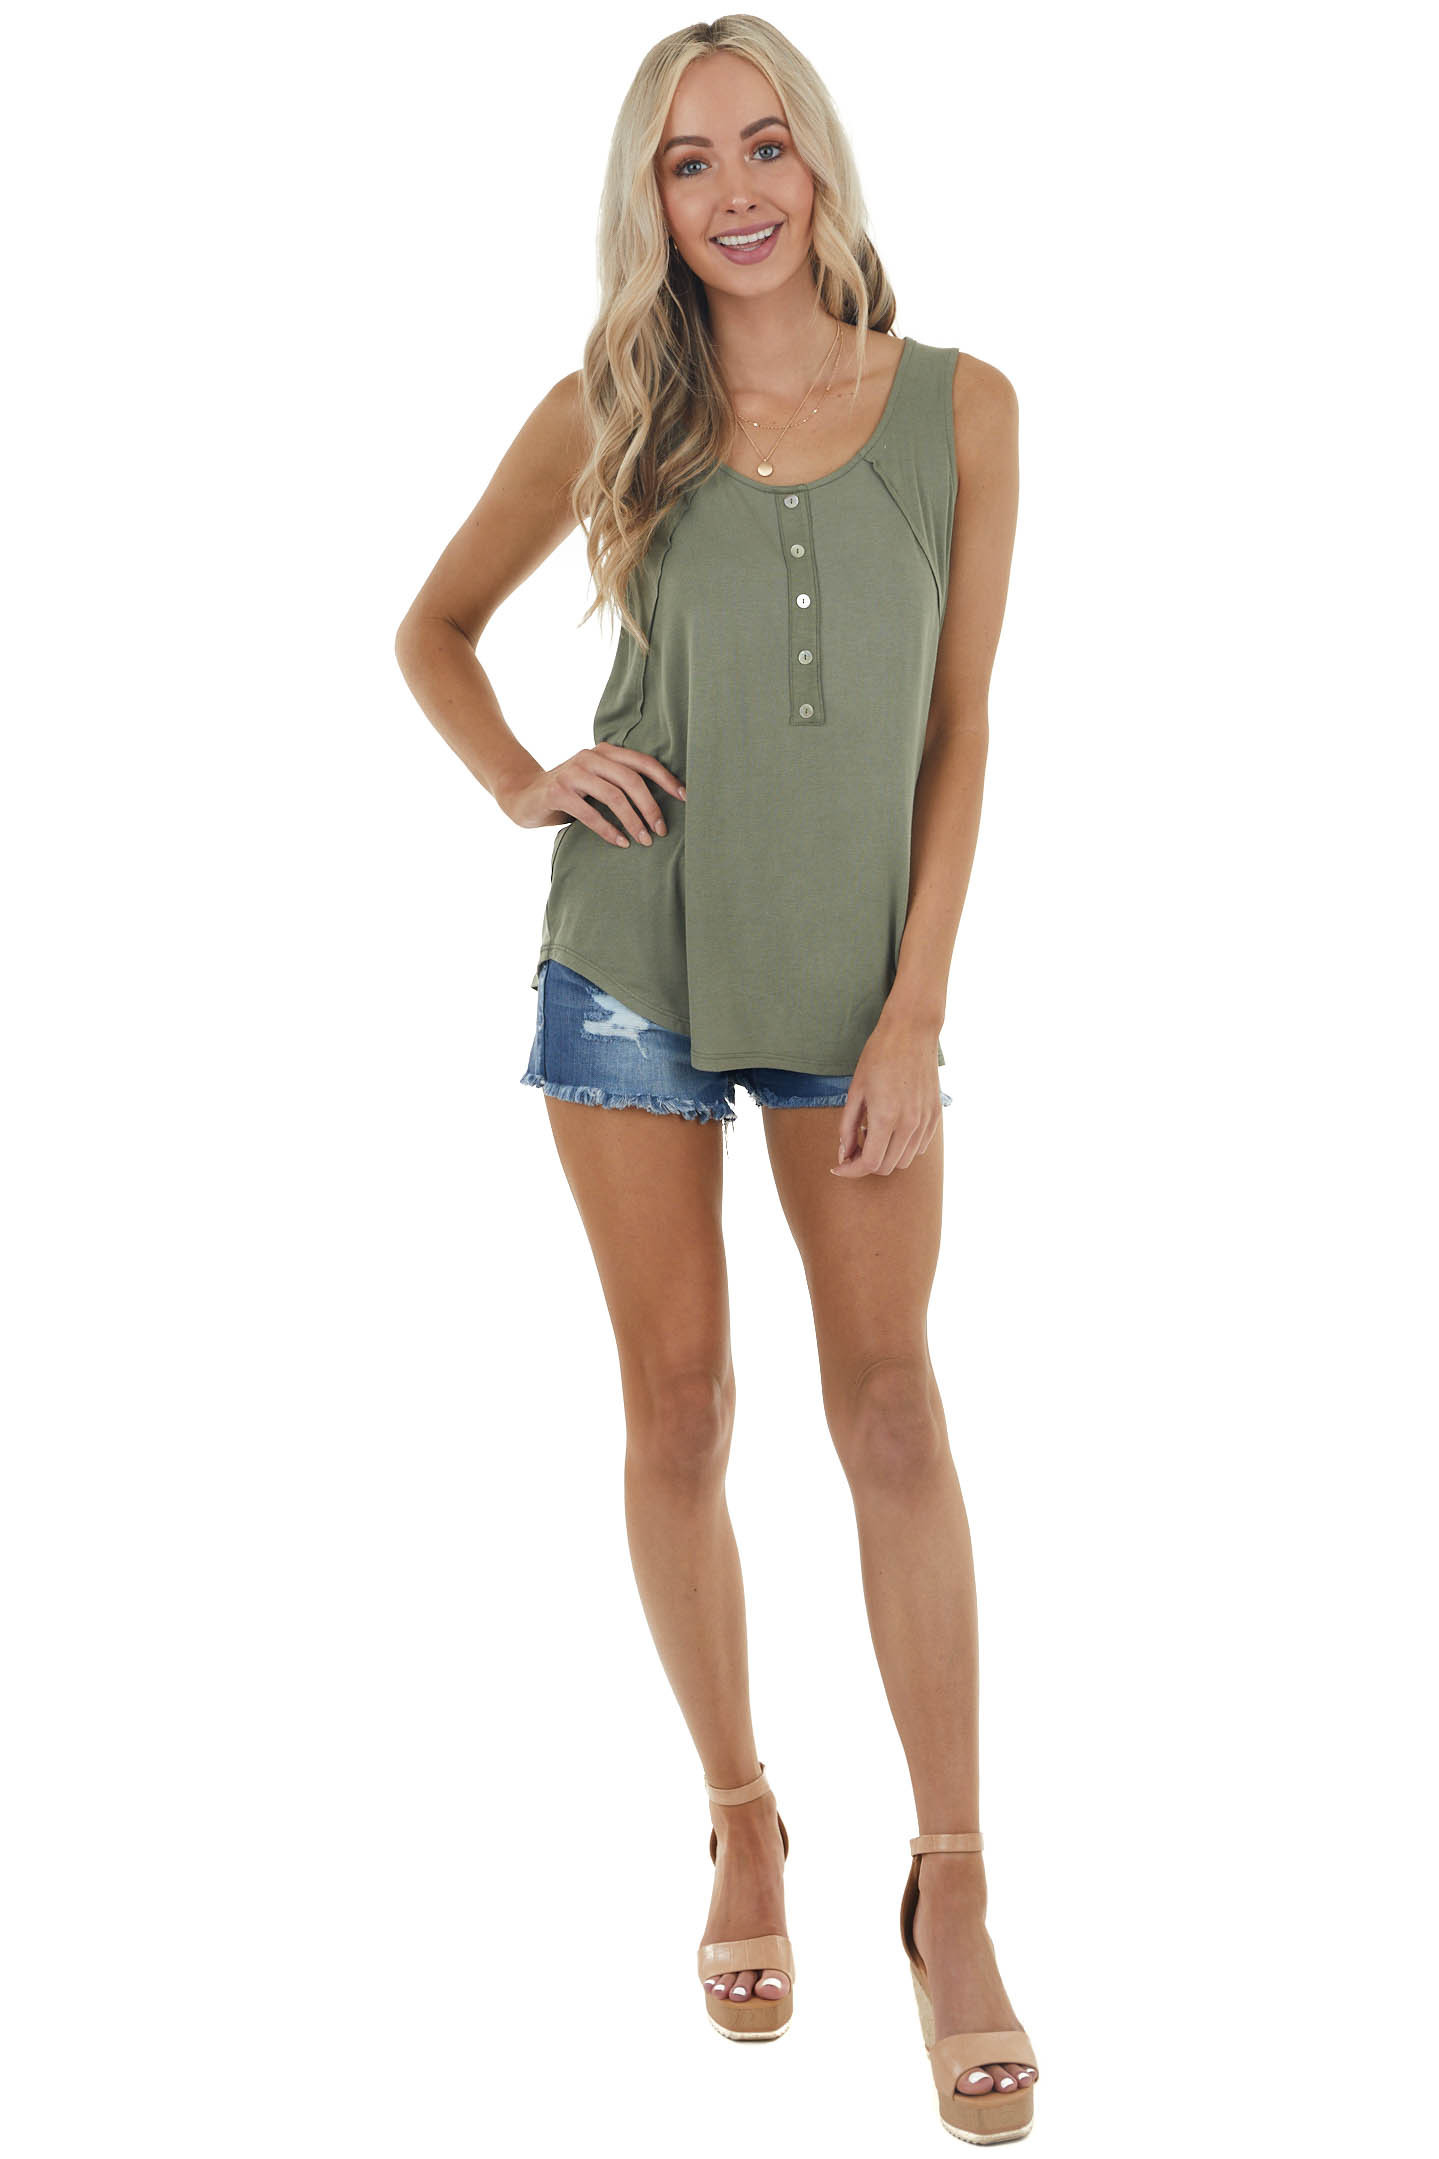 Faded Olive Henley Sleeveless Top with Raw Edge Detail